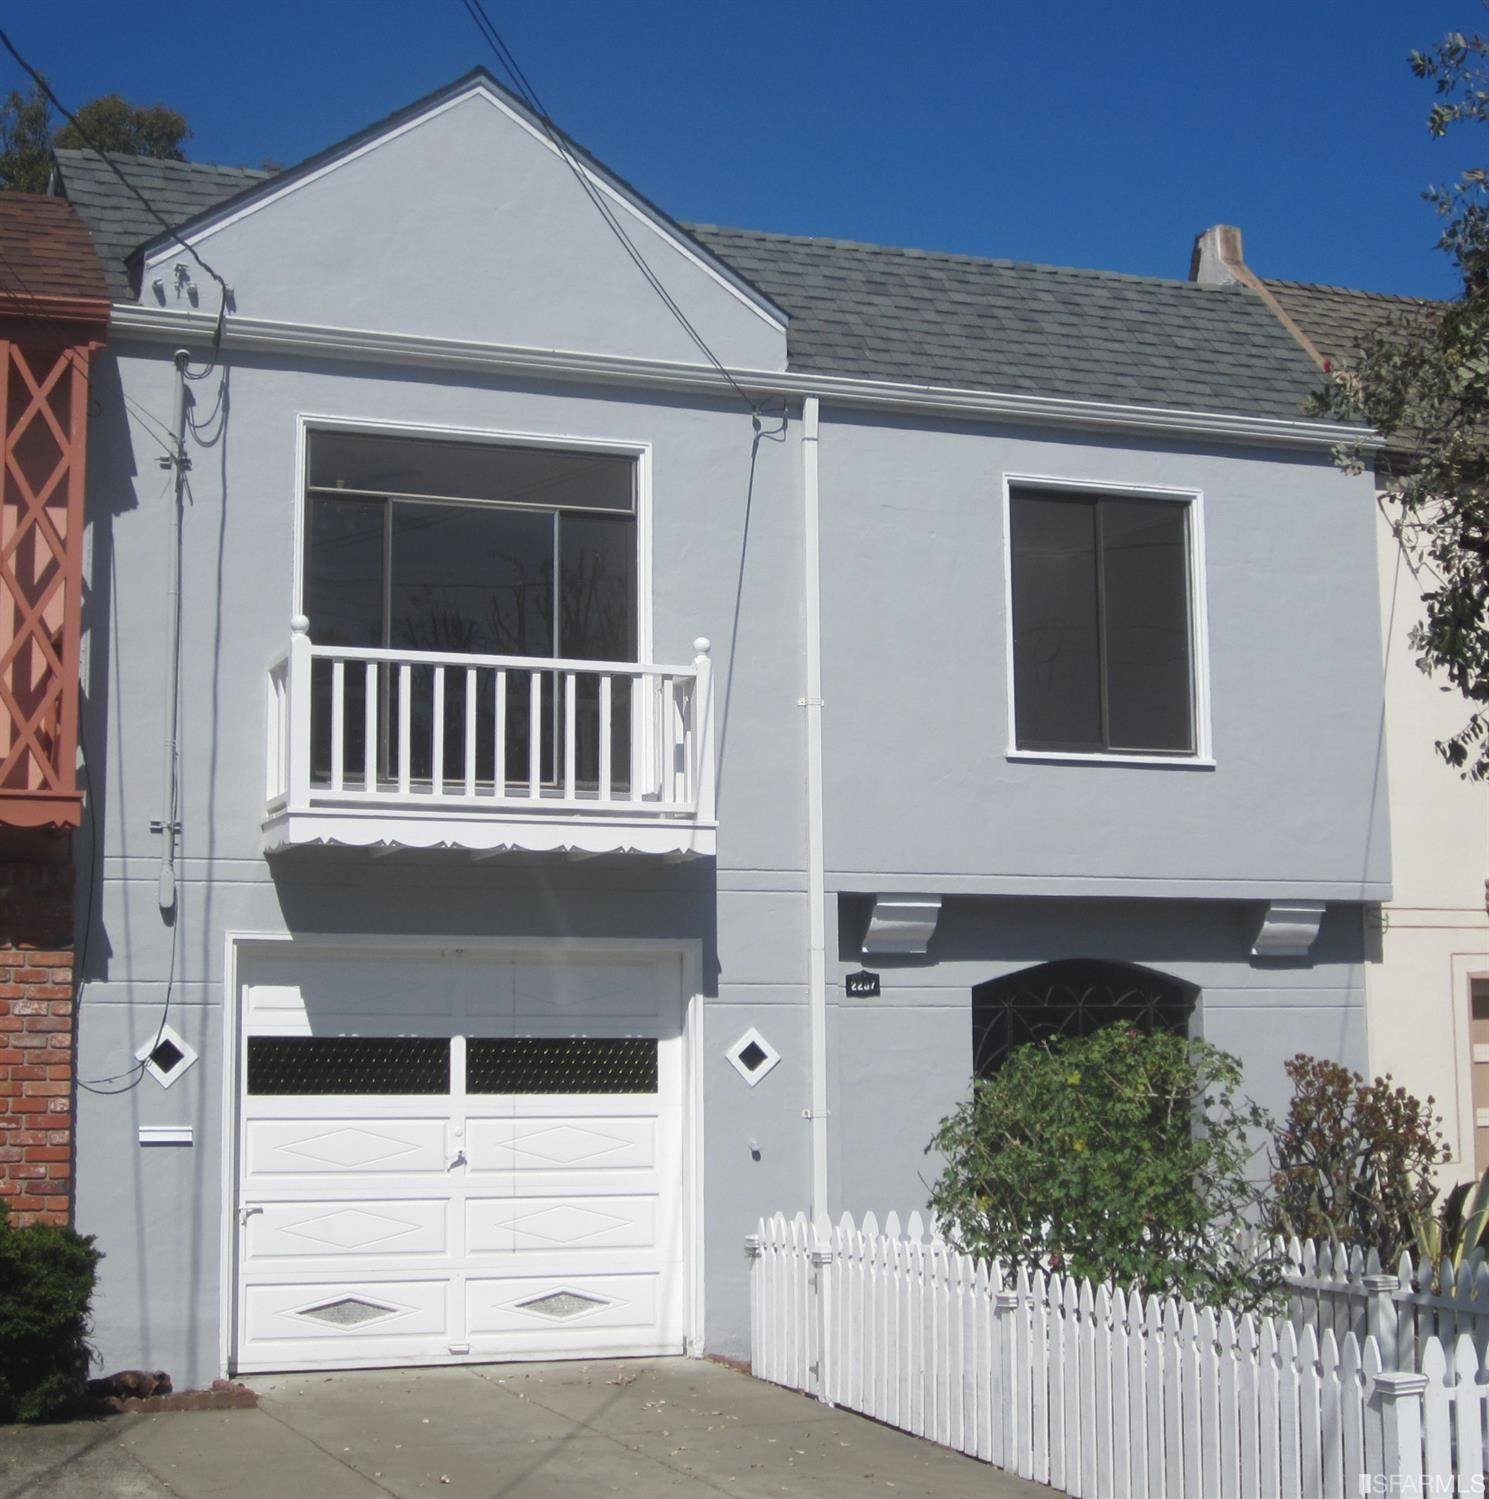 2267 39th Avenue, San Francisco, CA 94116 - #: 421546109